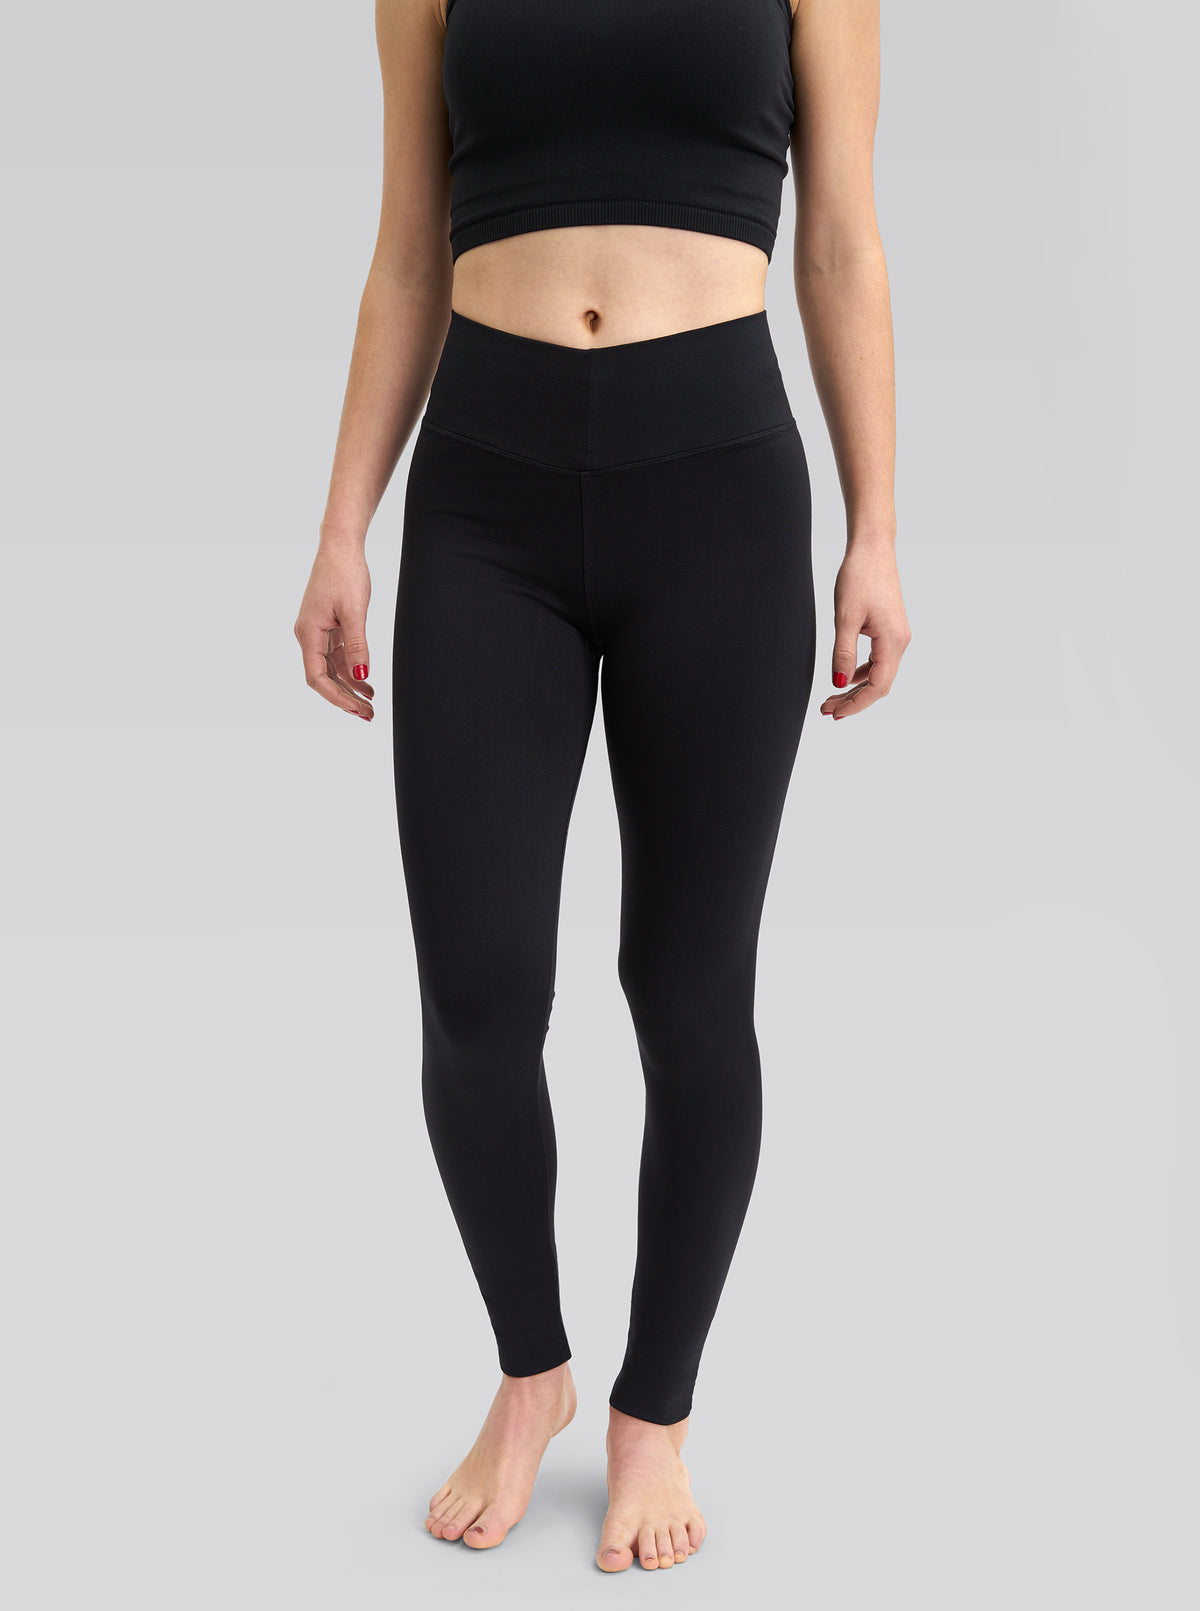 Black Limitless Leggings